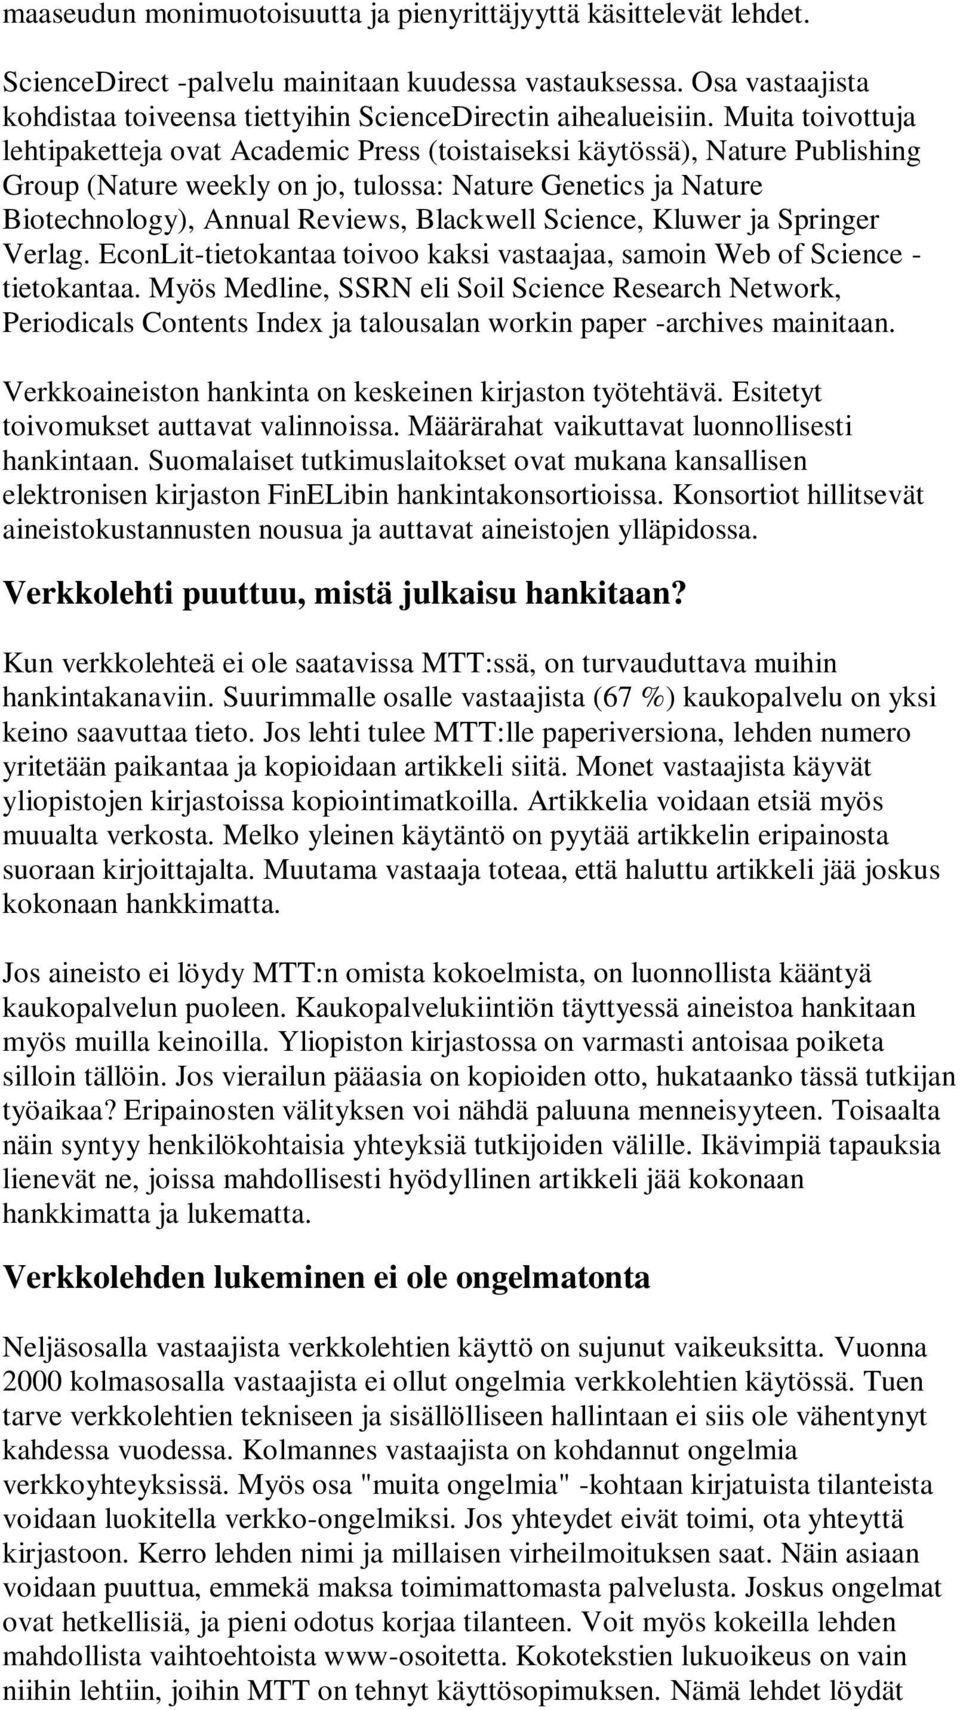 Muita toivottuja lehtipaketteja ovat Academic Press (toistaiseksi käytössä), Nature Publishing Group (Nature weekly on jo, tulossa: Nature Genetics ja Nature Biotechnology), Annual Reviews, Blackwell